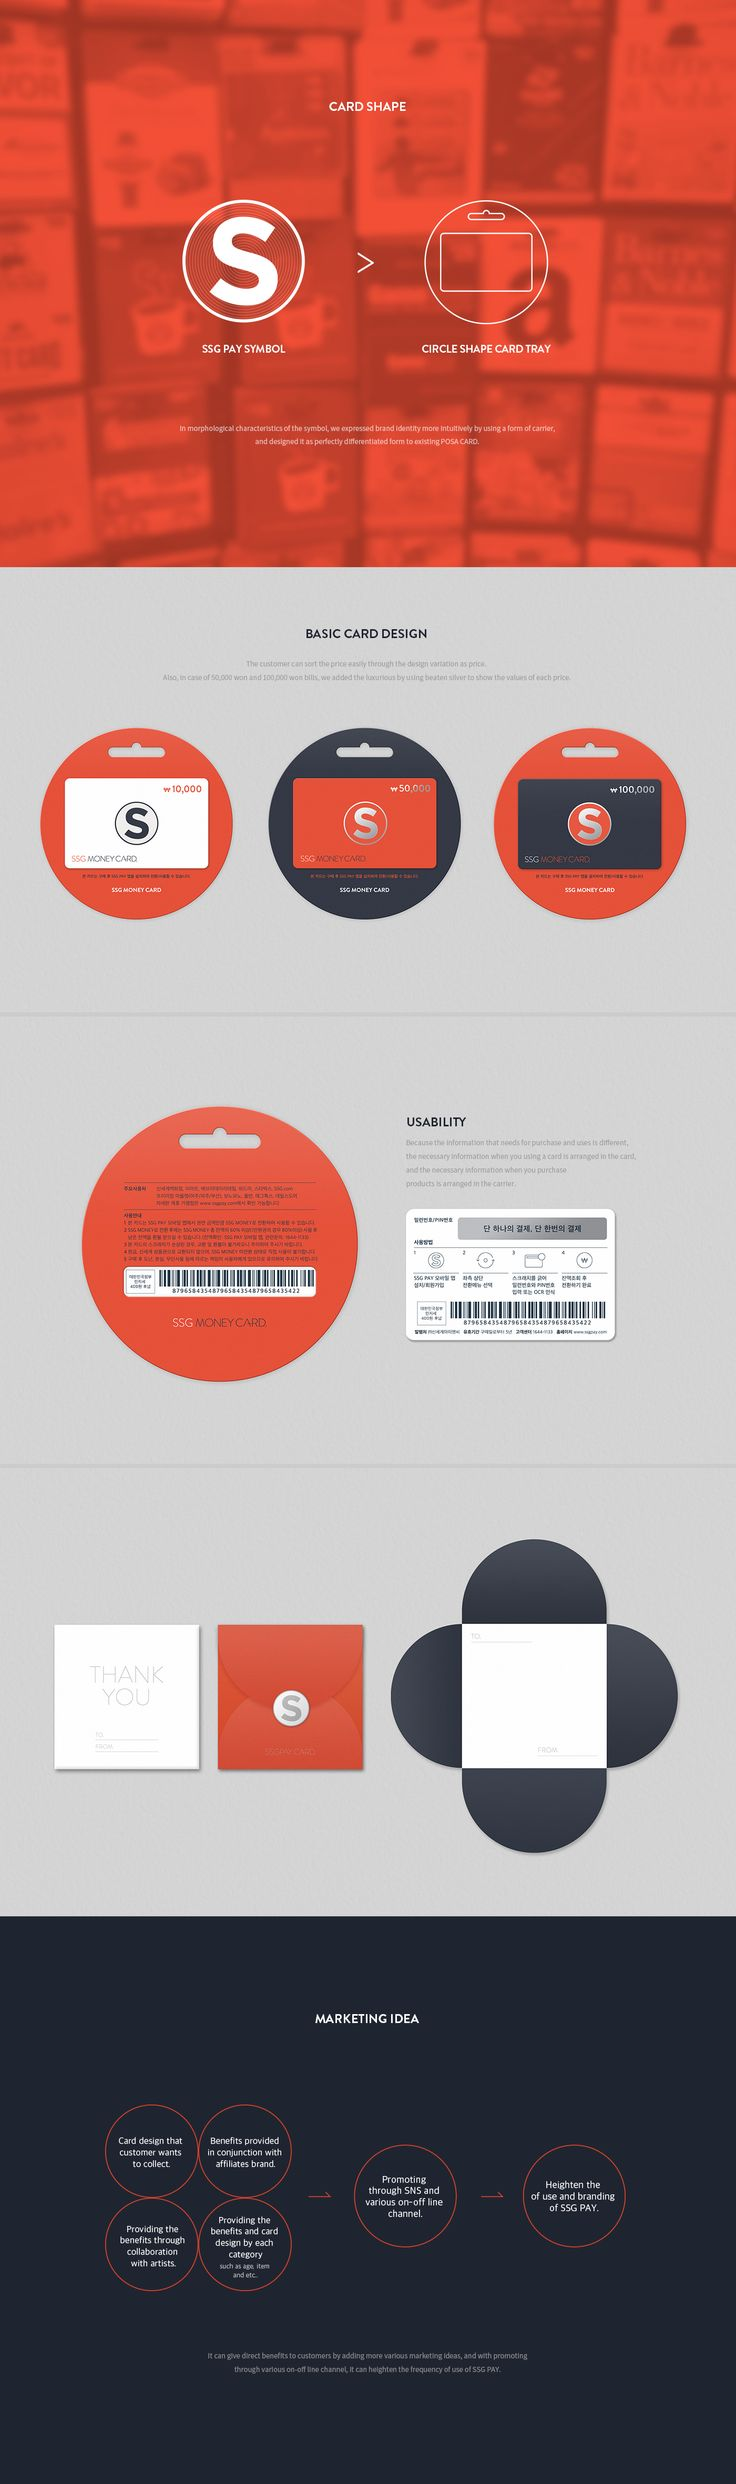 SSG PAY Easy Payment Mobile App on Behance